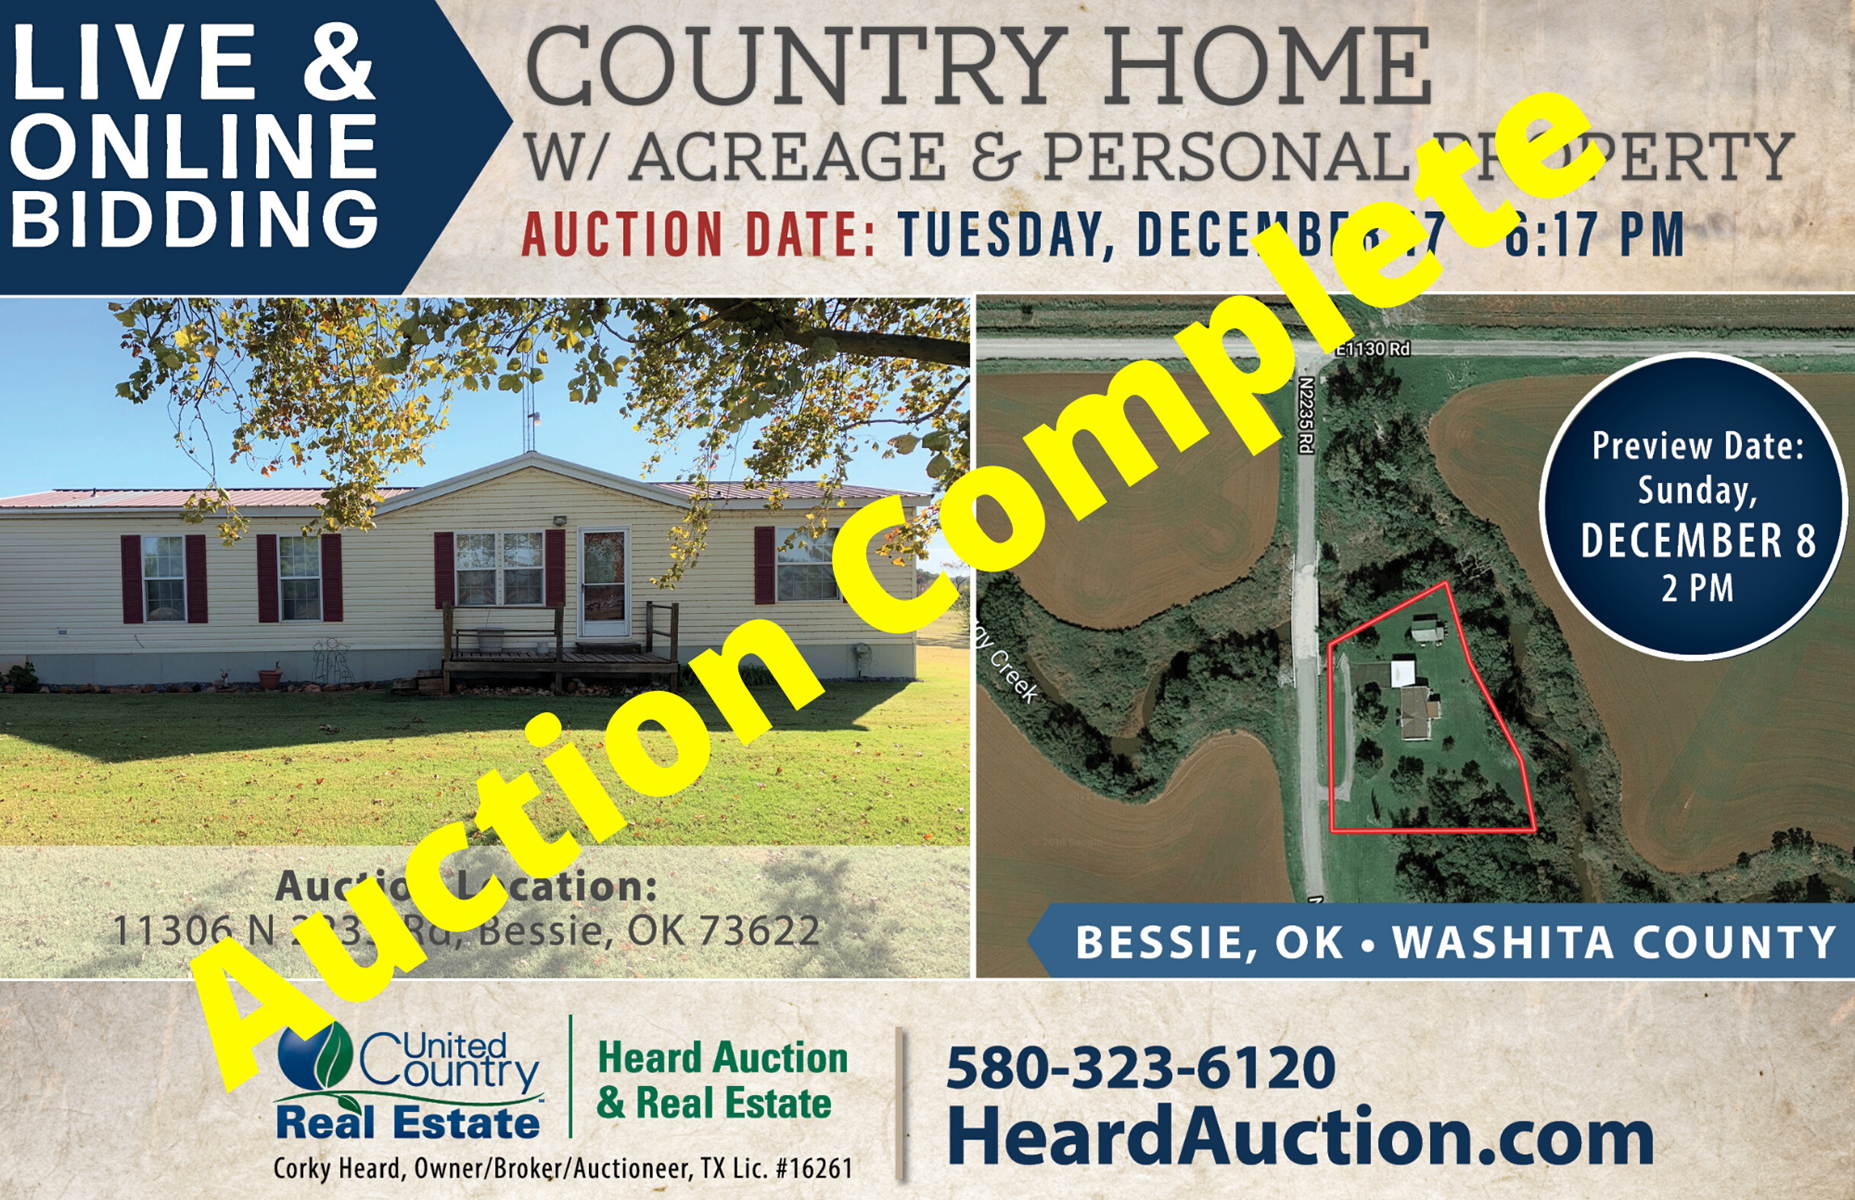 Country Home with Acreage for Sale, Bessie, OK – Washita Co.